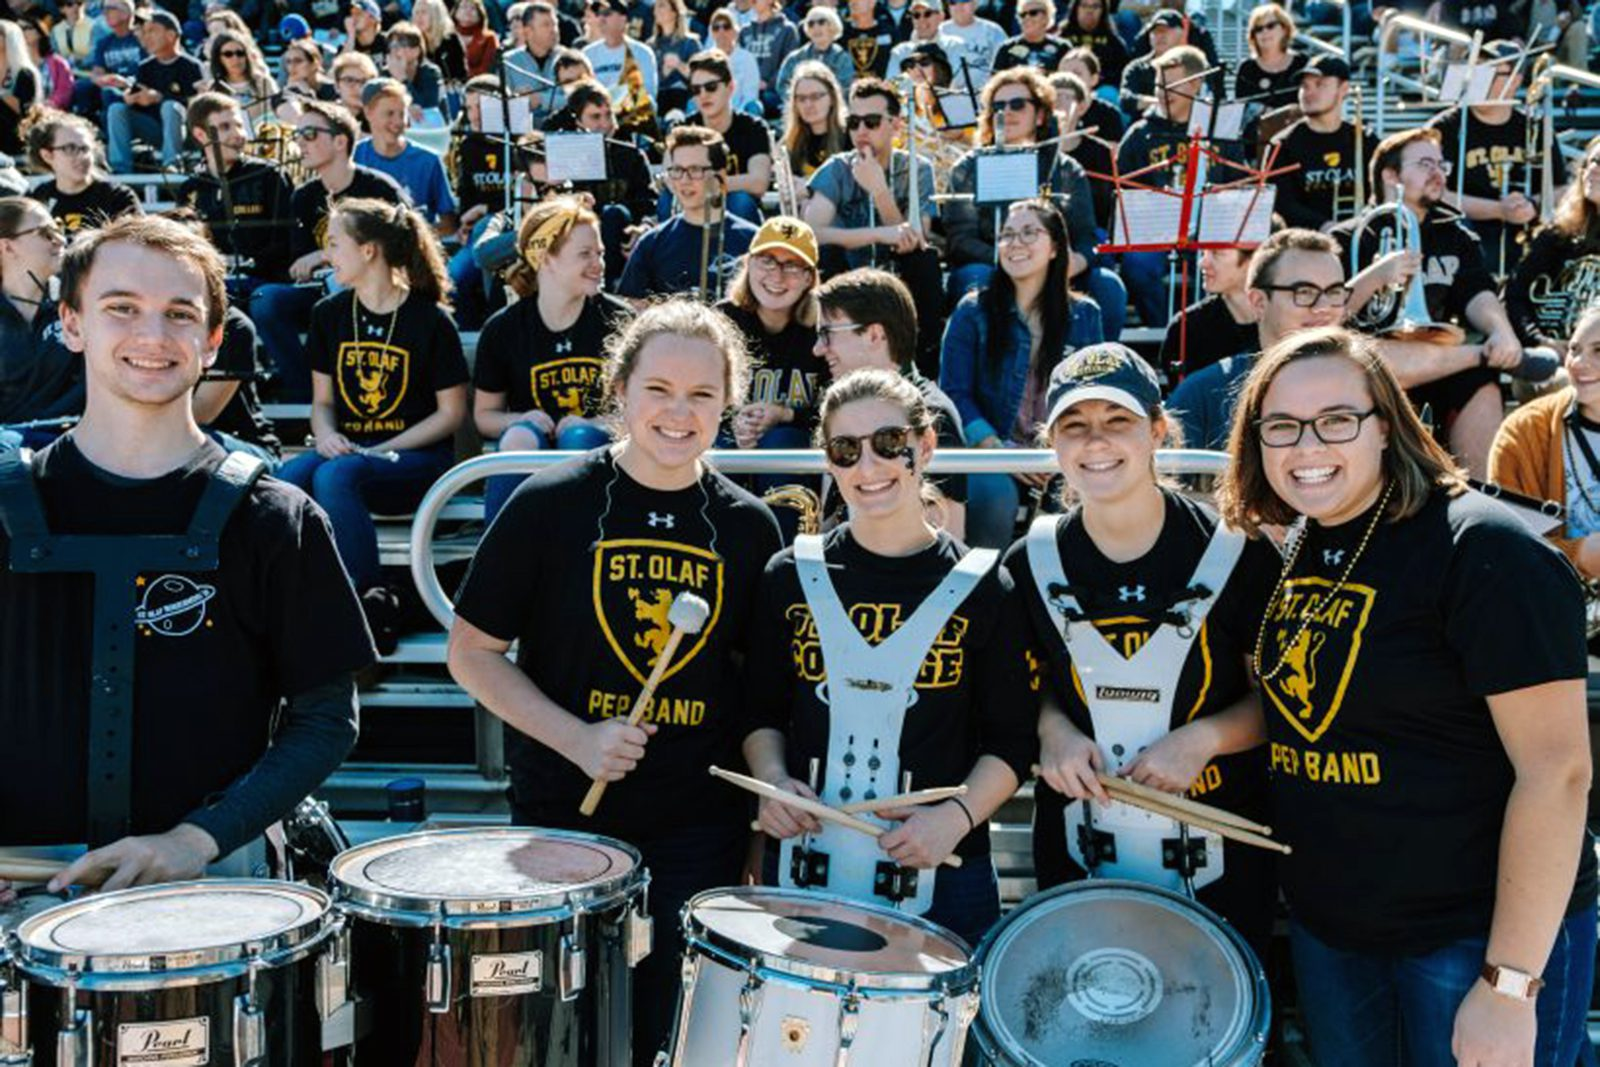 Students carrying drums smile in the foreground with students sitting in bleachers behind them.